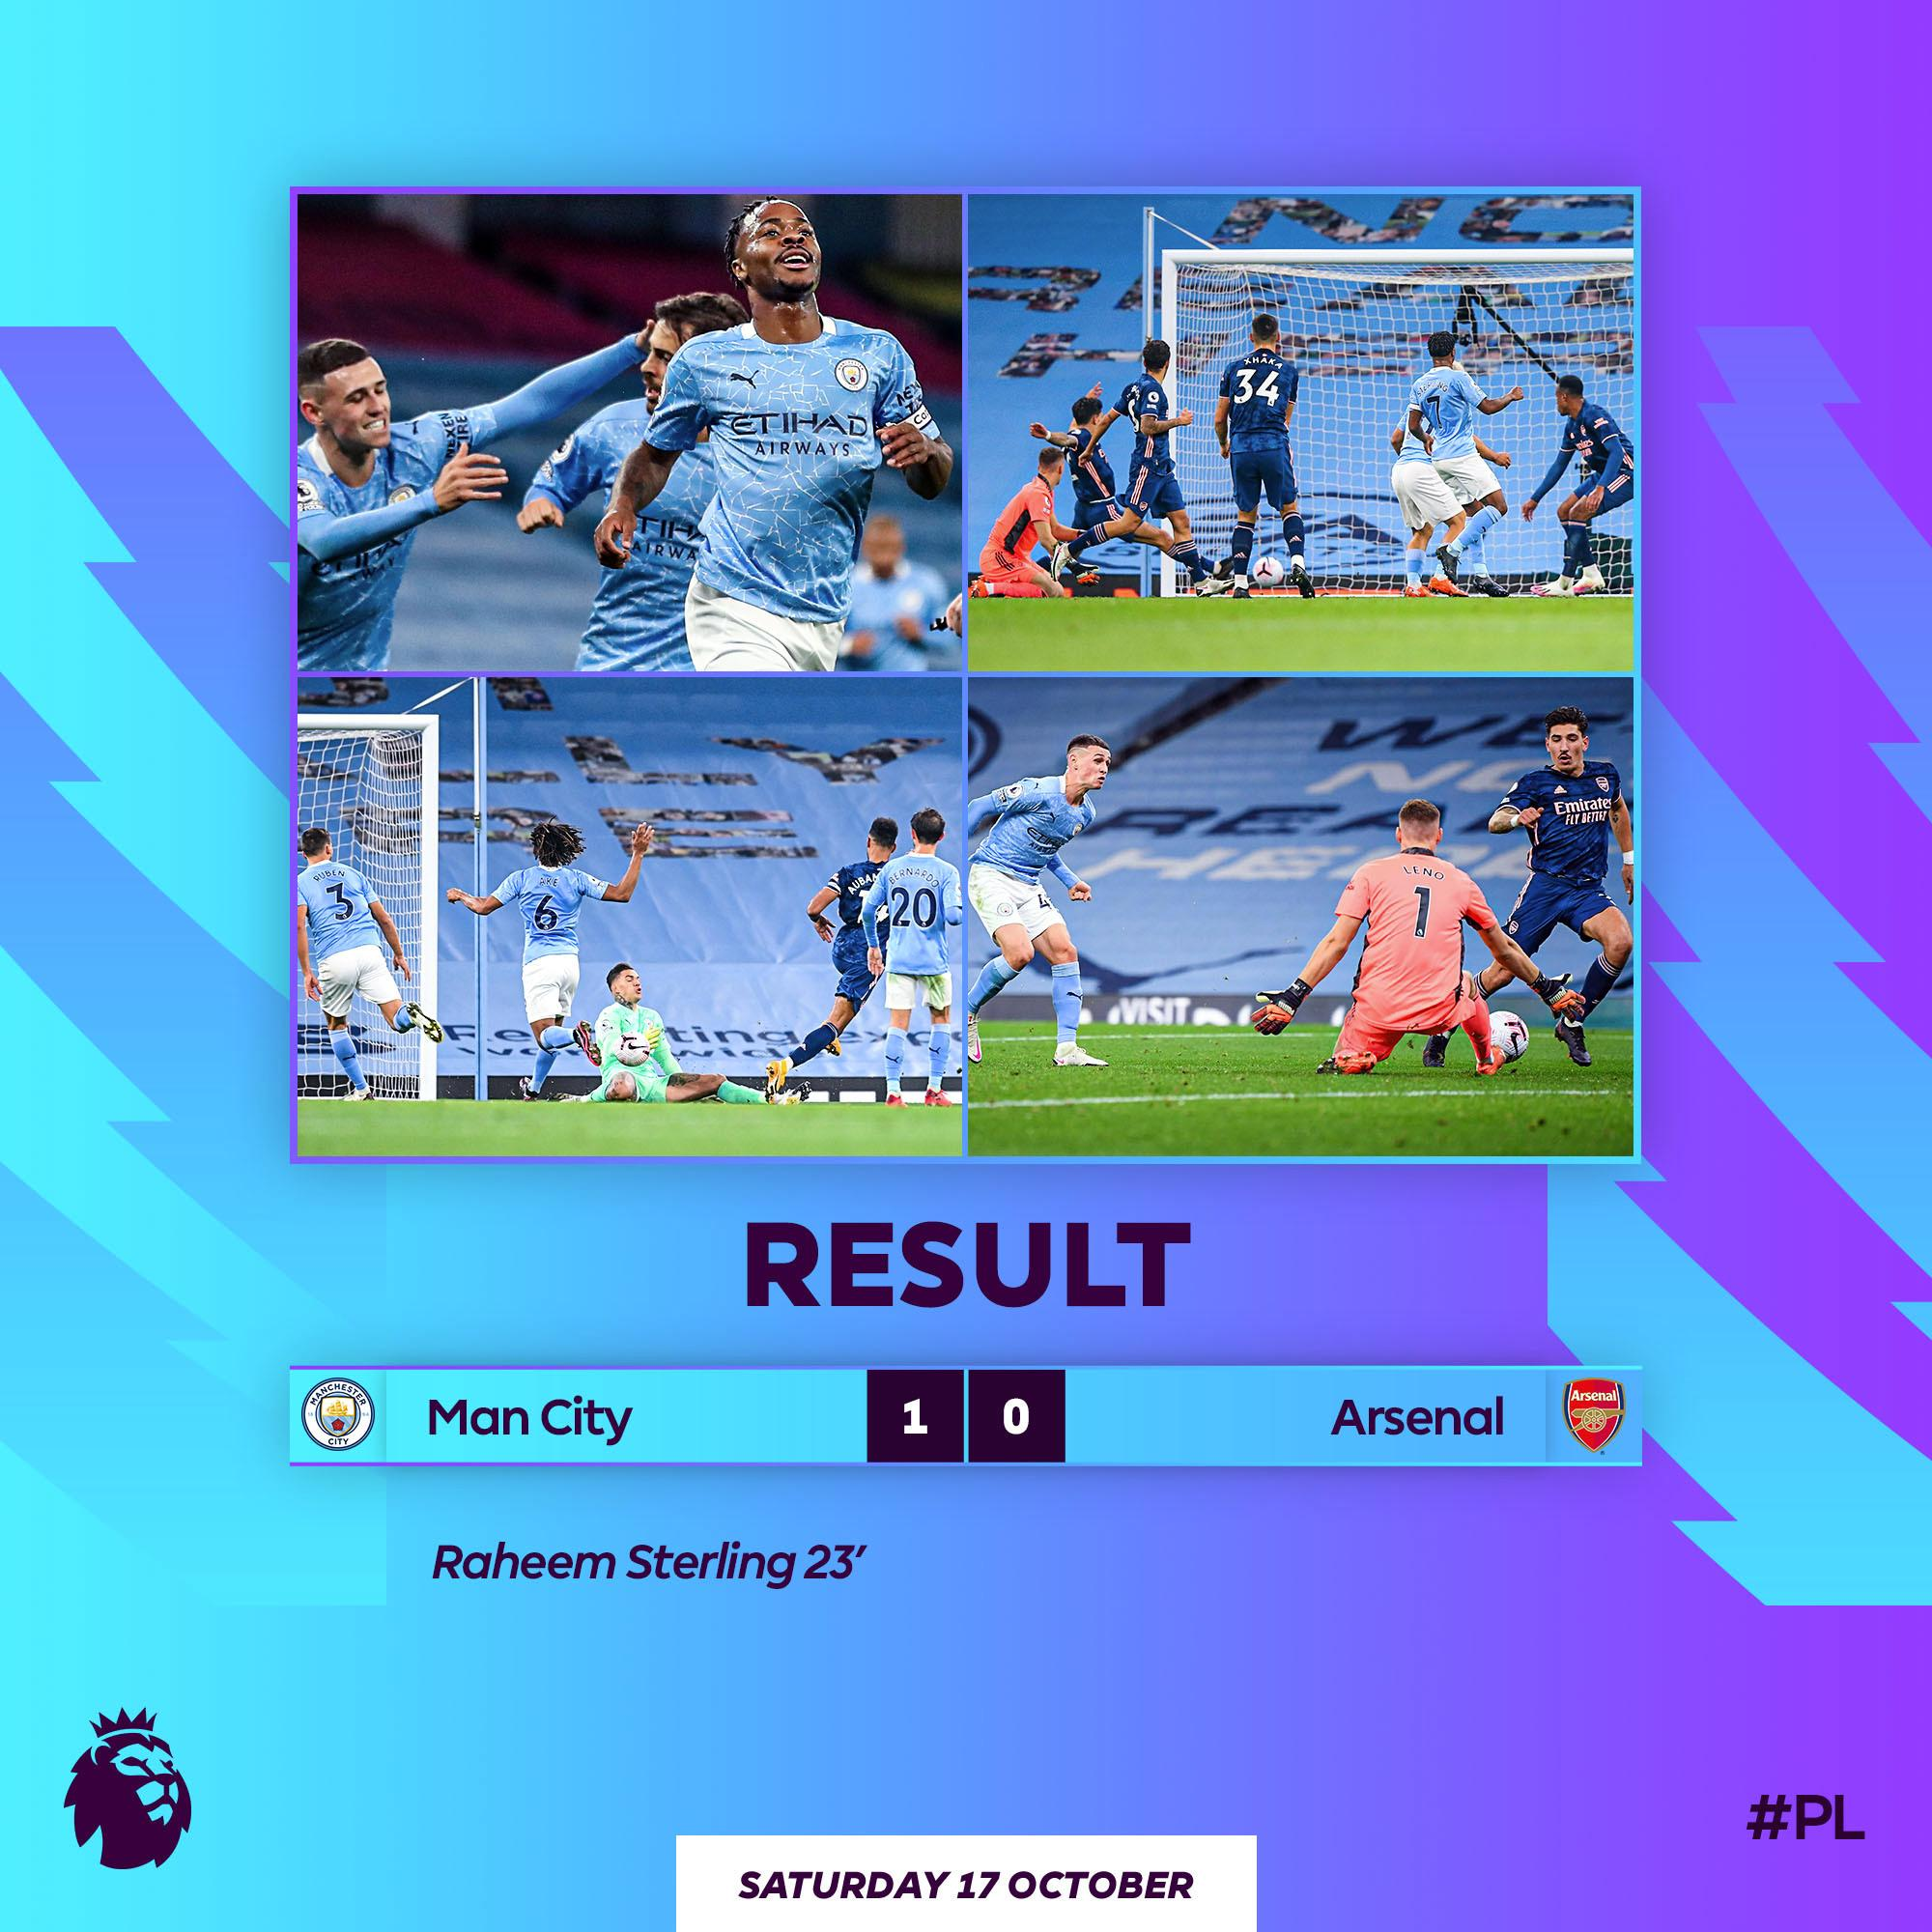 Man City 1-0 Arsenal Highlight Mp4 Download